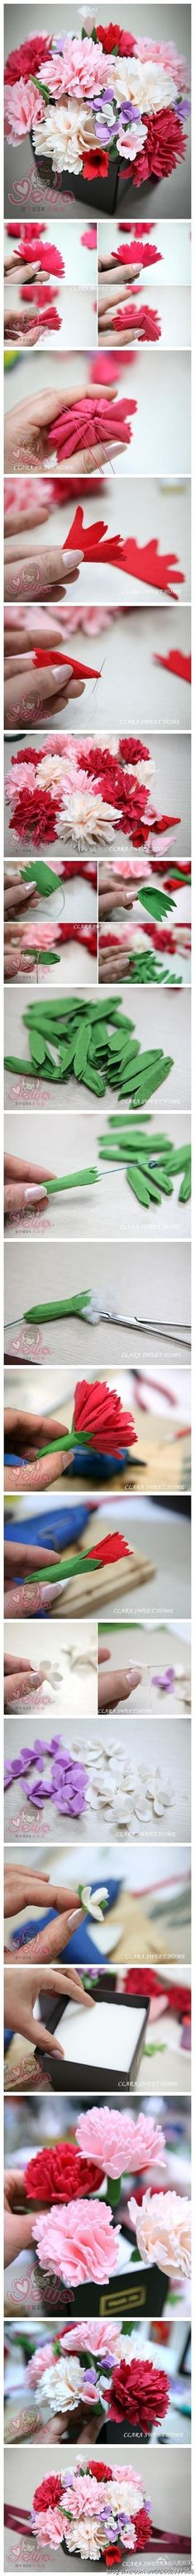 free felt tutorials- felt flowers